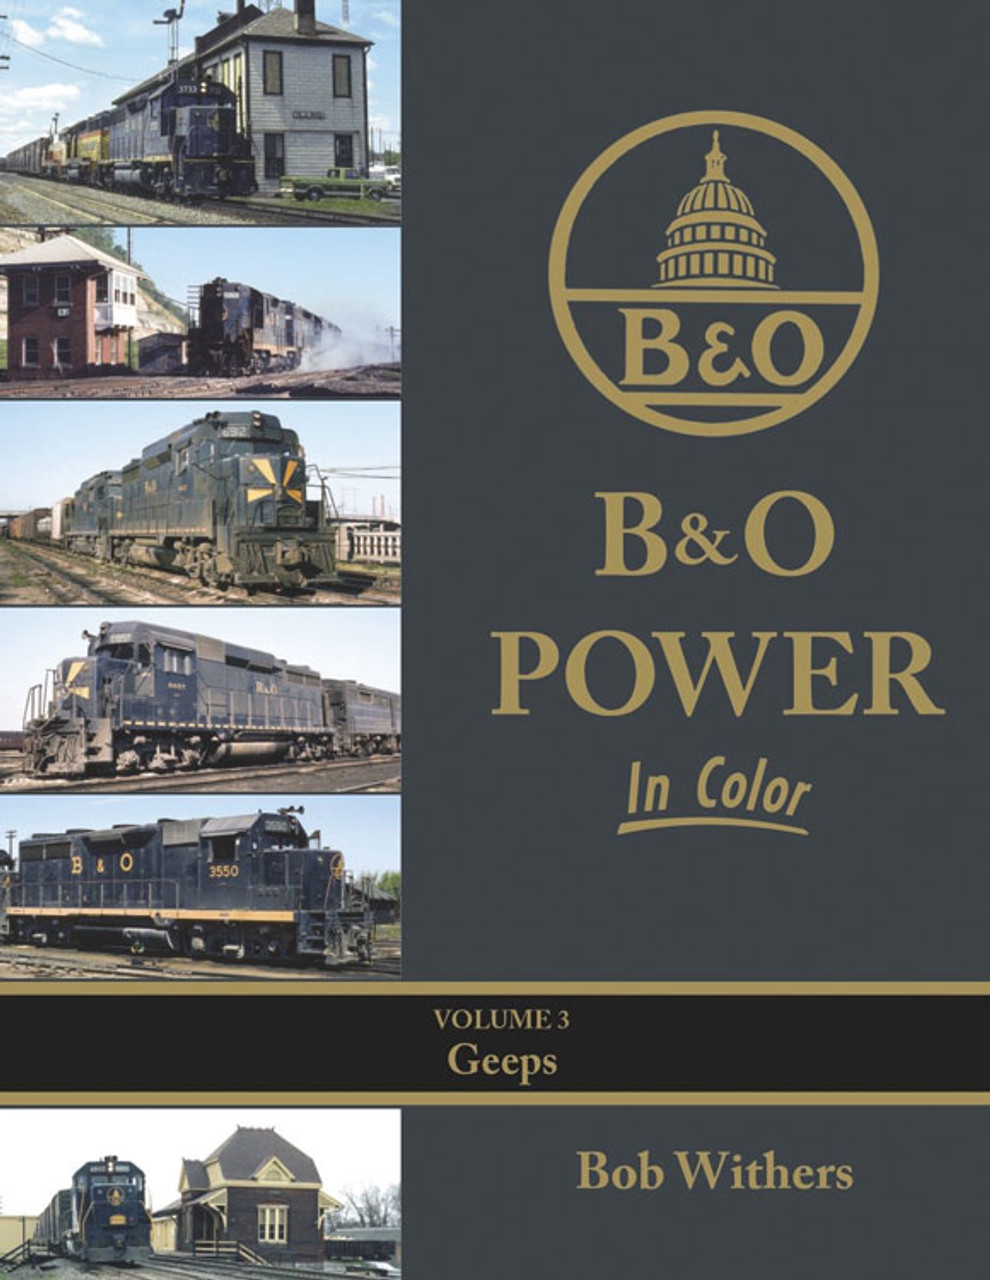 B&O Power in Color -- Volume 3: Geeps